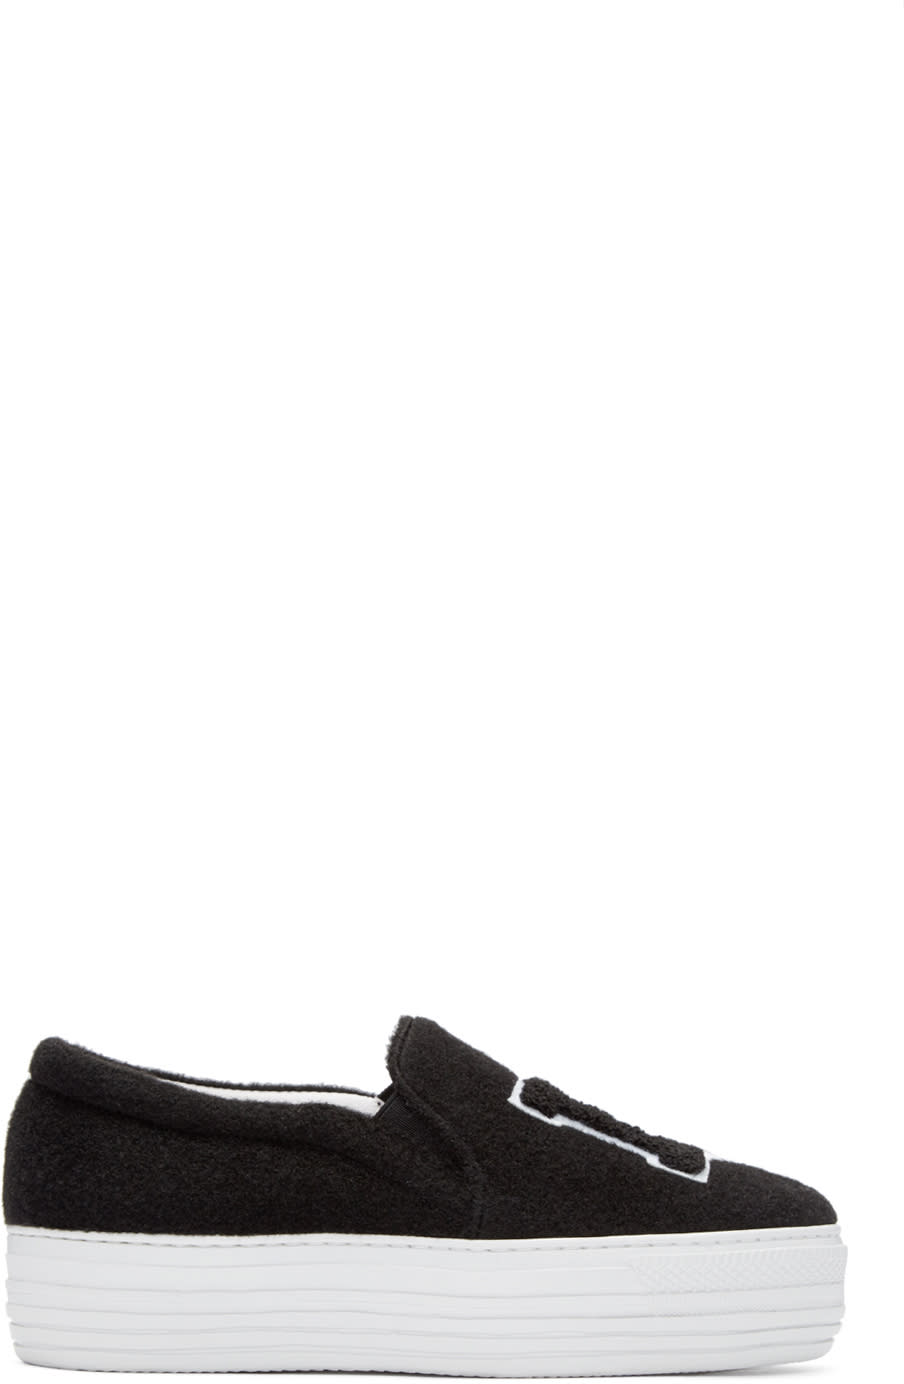 Joshua Sanders Black Felt Ny Slip-on Sneakers